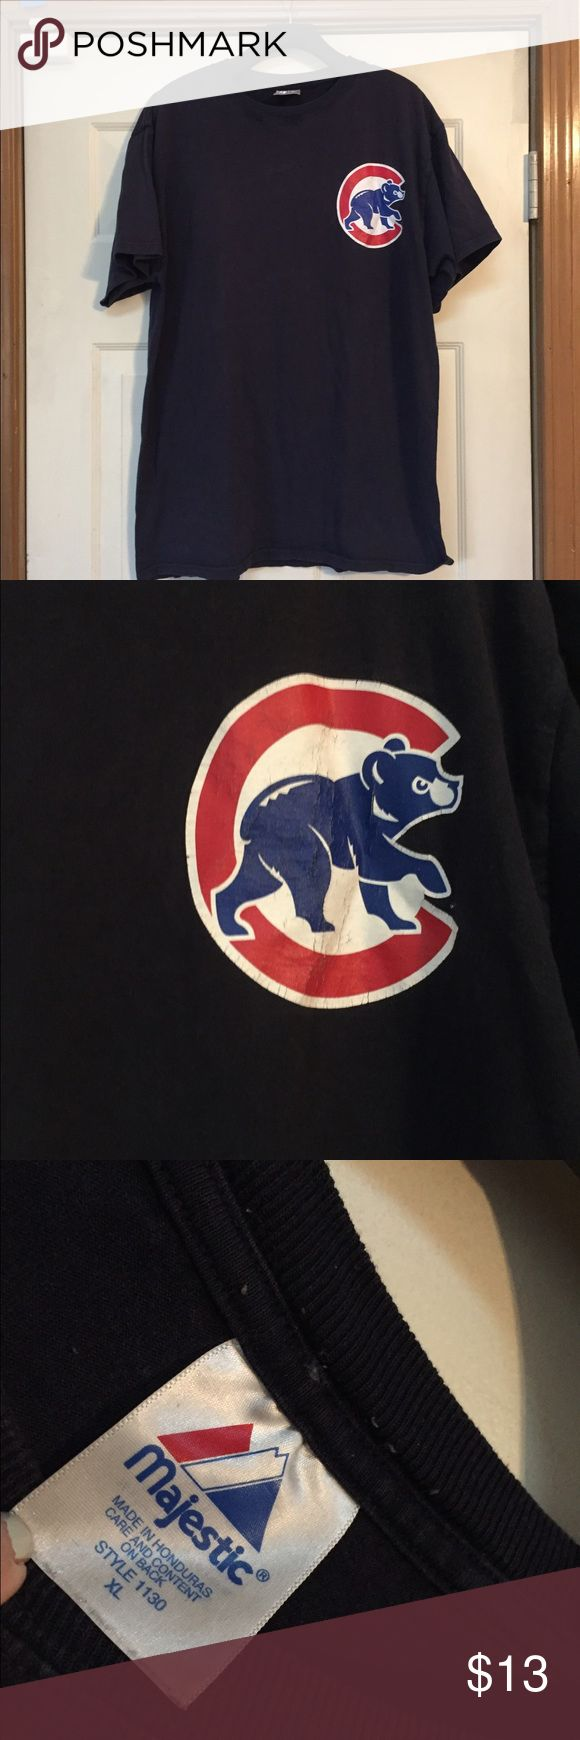 Men's vintage Chicago Cubs T shirt XL Pet and smoke and pet free home. Bundle discount 20% the logo does show some wear. See pics Shirts Tees - Short Sleeve